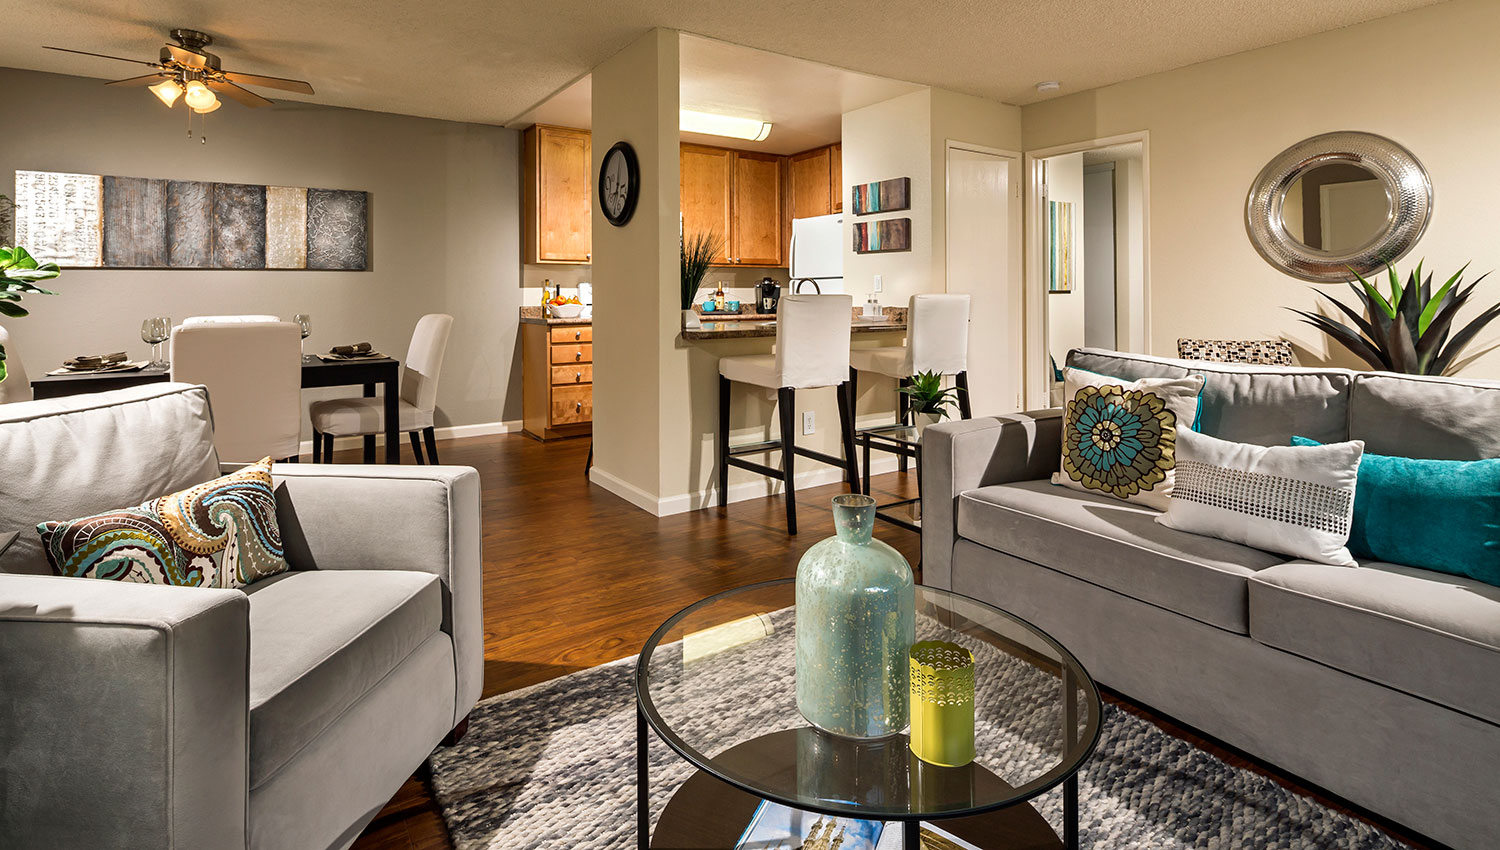 Apartments in pleasanton ca gatewood apartment floor plans - 2 bedroom apartments in pleasanton ca ...